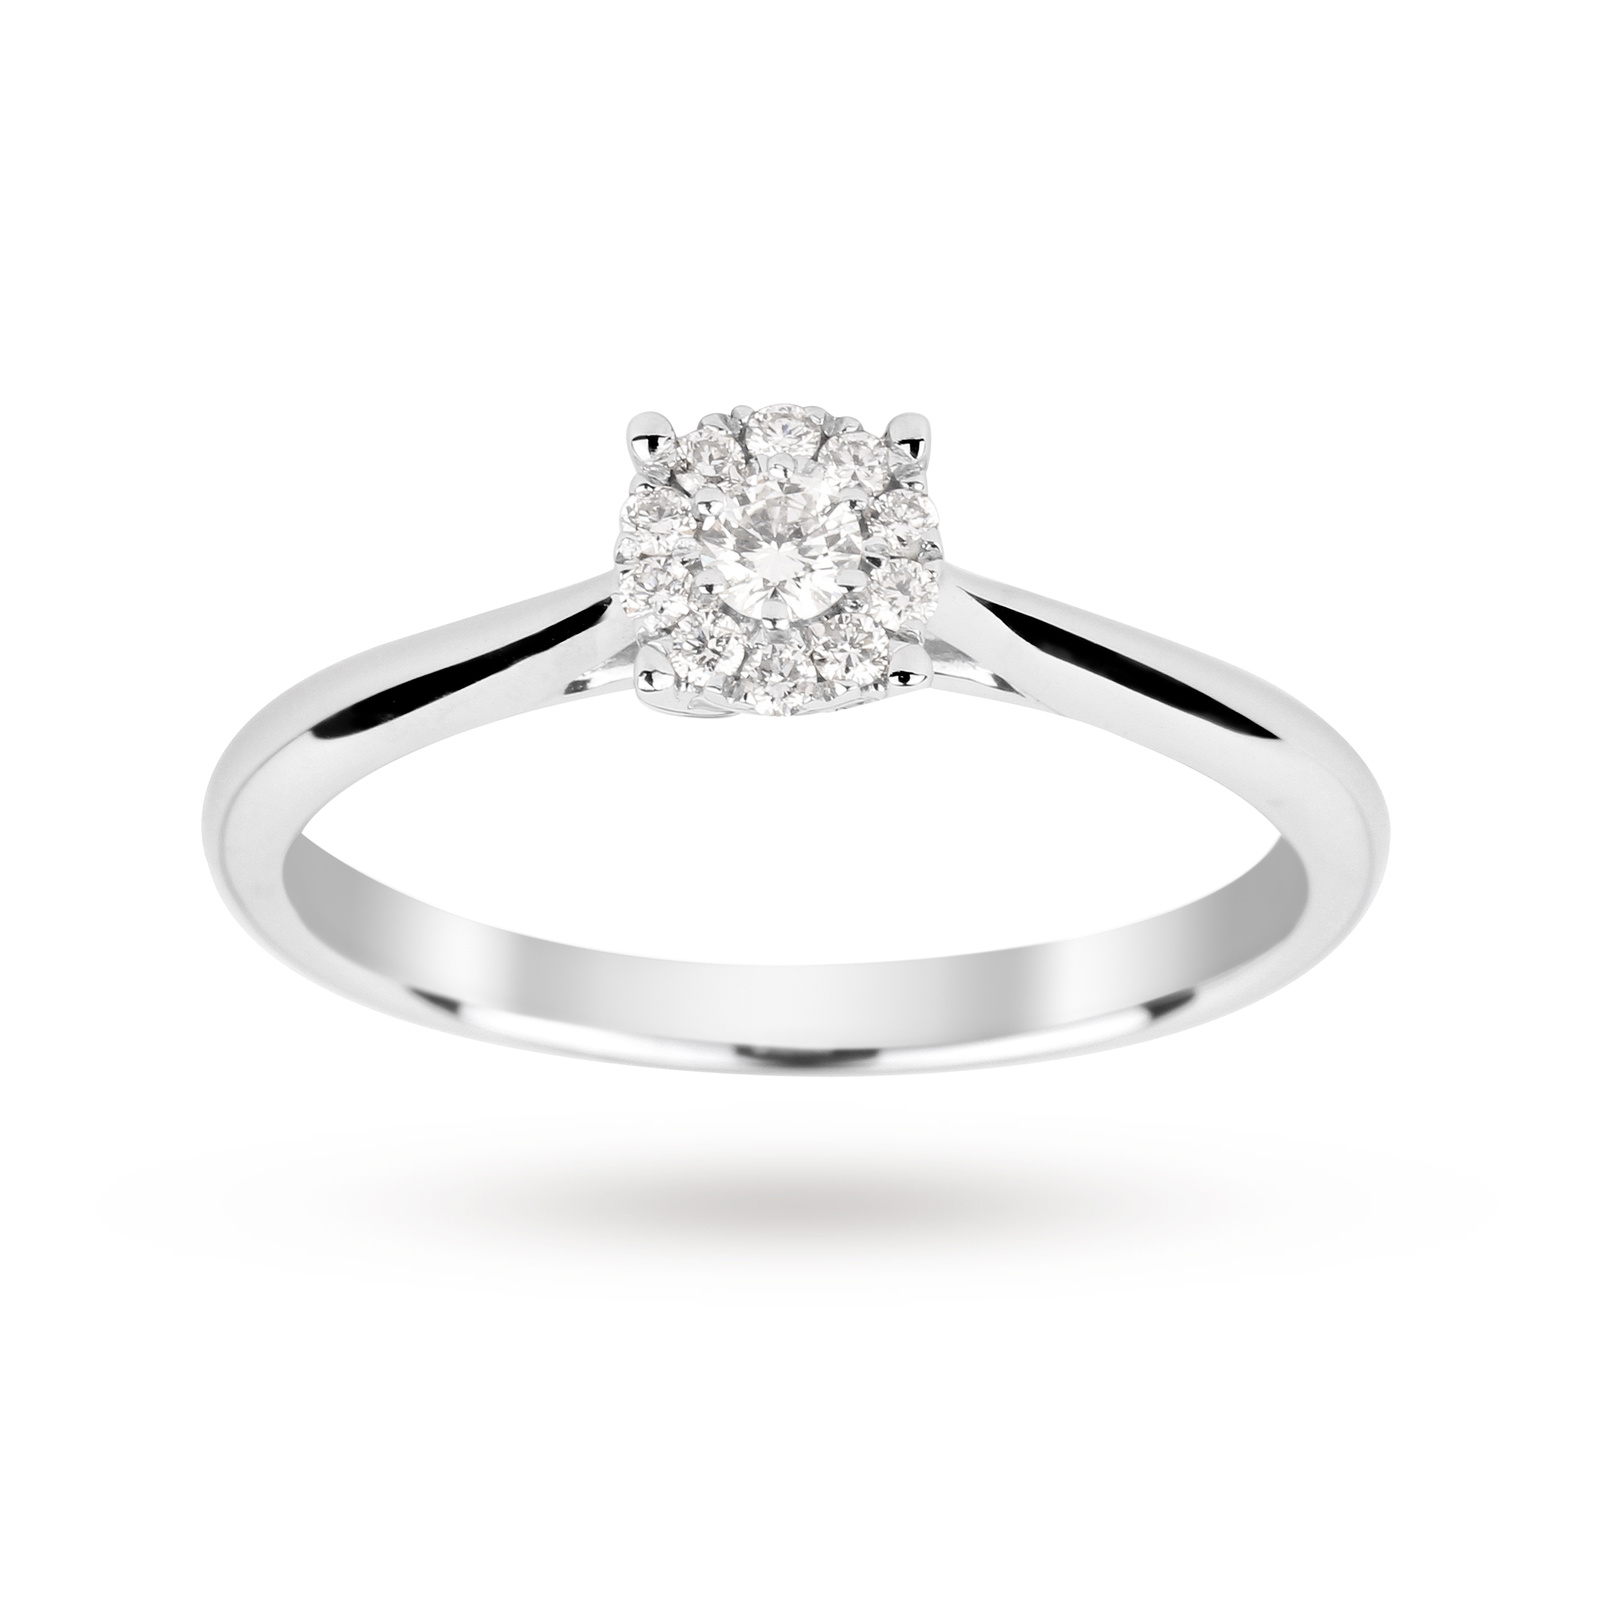 Brilliant cut 0.15 carat solitaire diamond ring in 9 carat ...